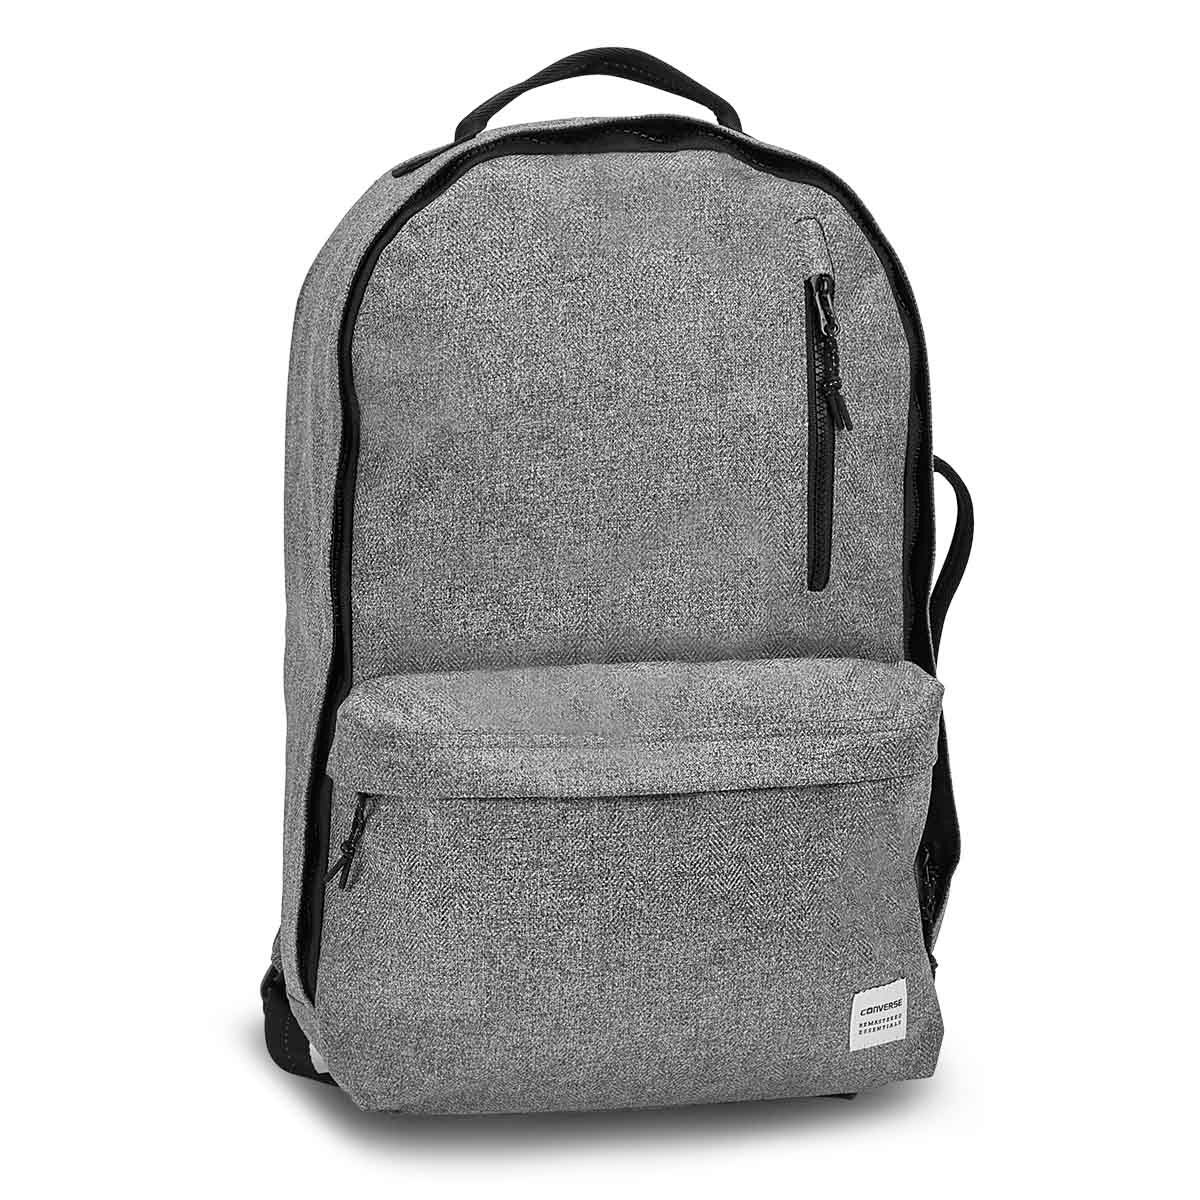 Unisex ESSENTIALS grey  backpack